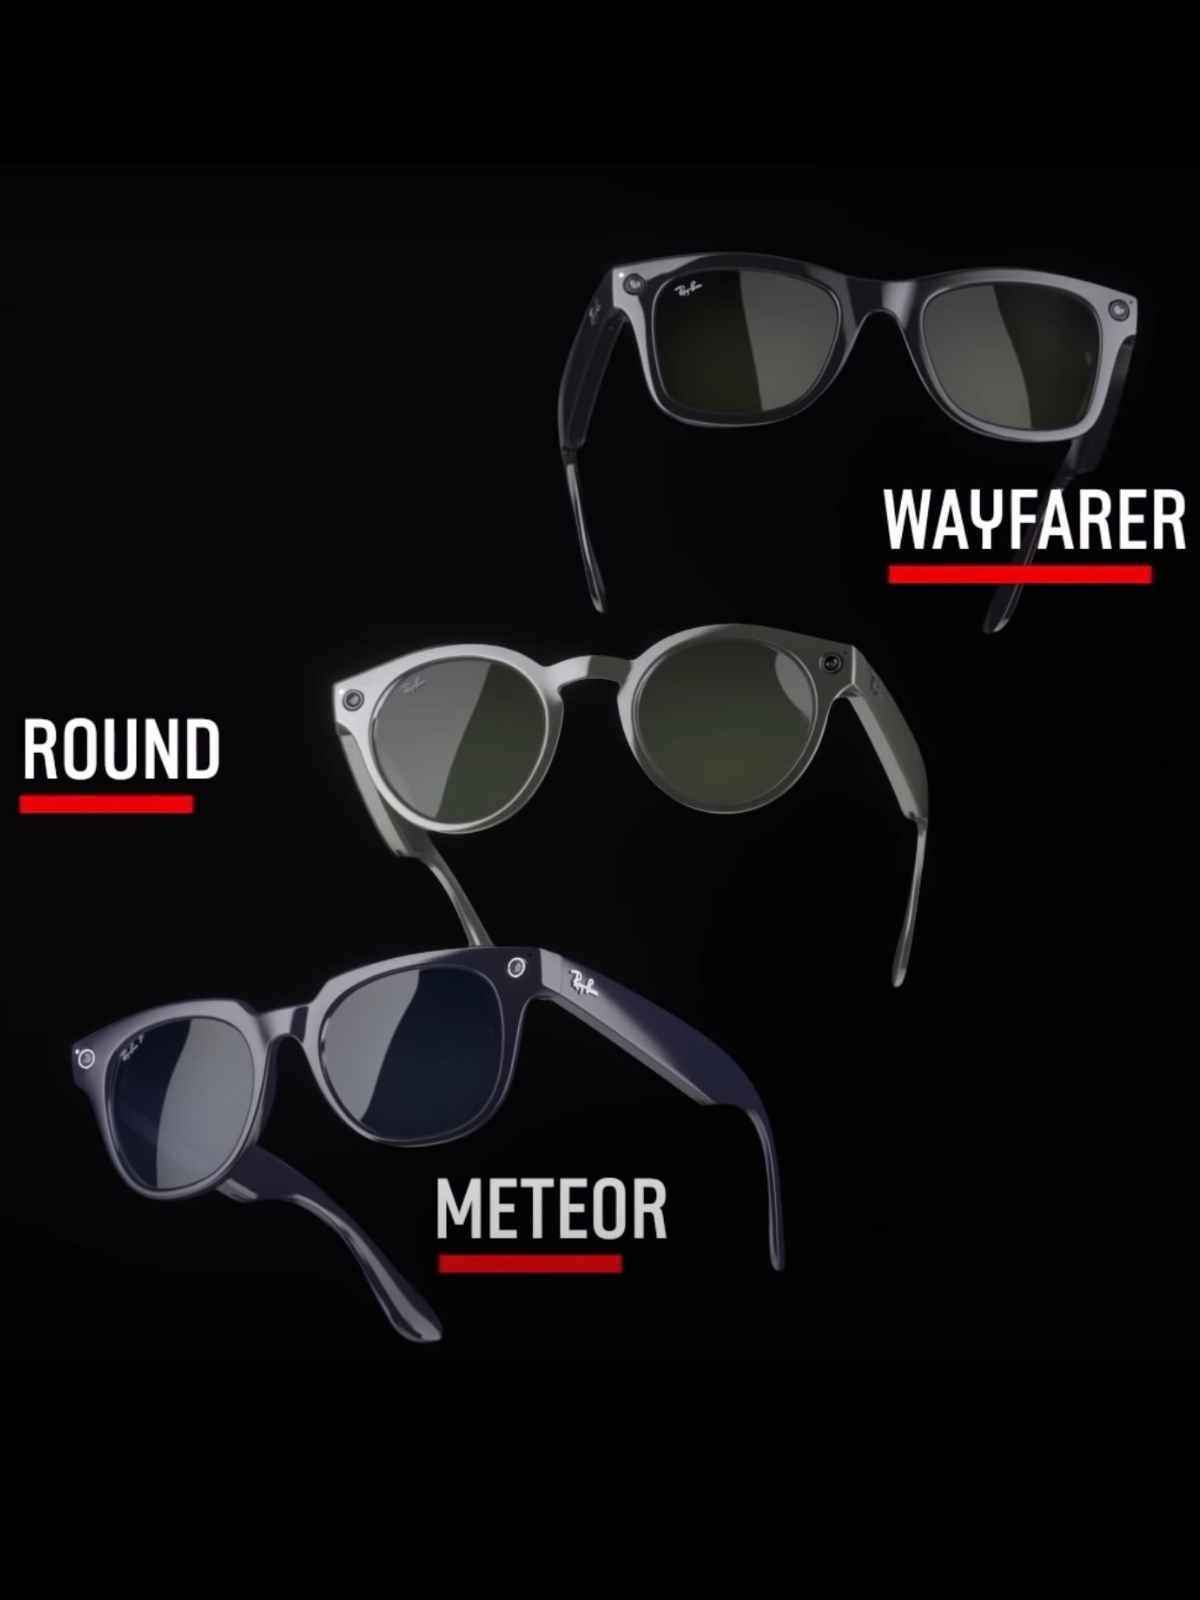 ray-ban stories style options smart frame designs